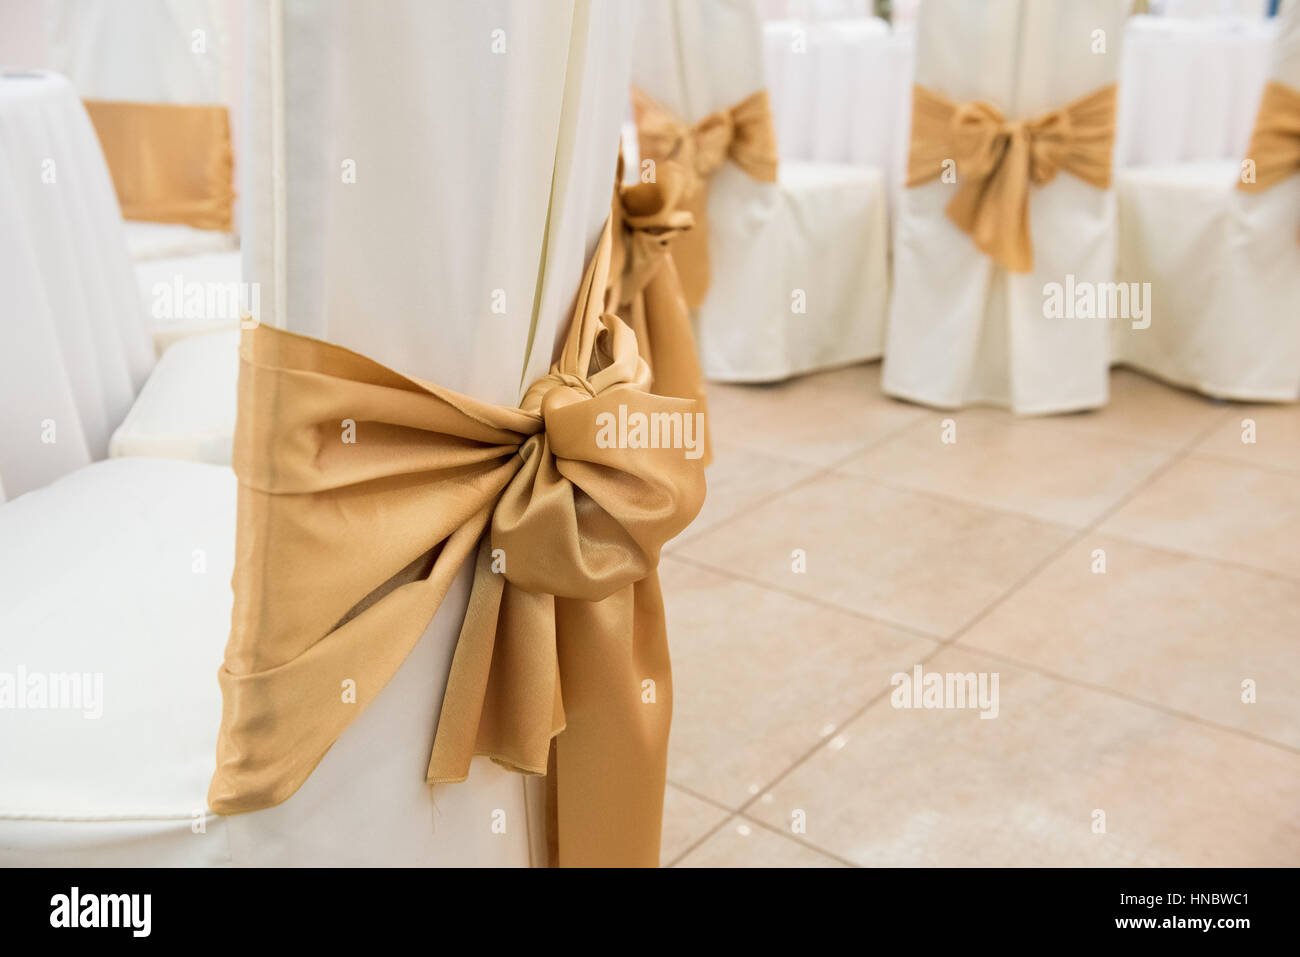 Wedding chairs with tied bows - Stock Image